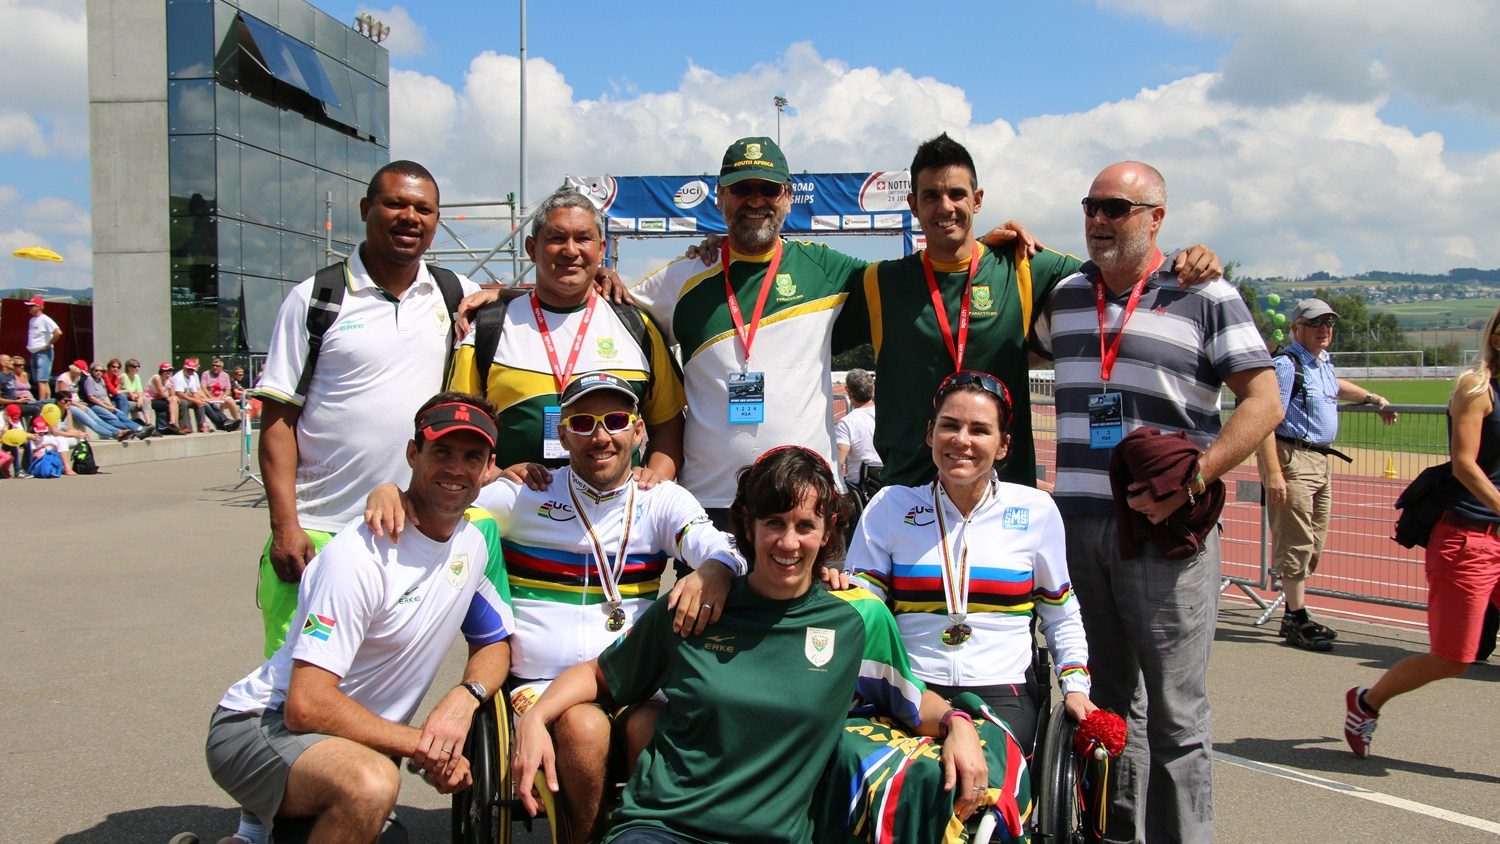 World Champions Pieter du Preez and Justine Asher surrounded by members of their team in Nottwil ©Illse du Preez